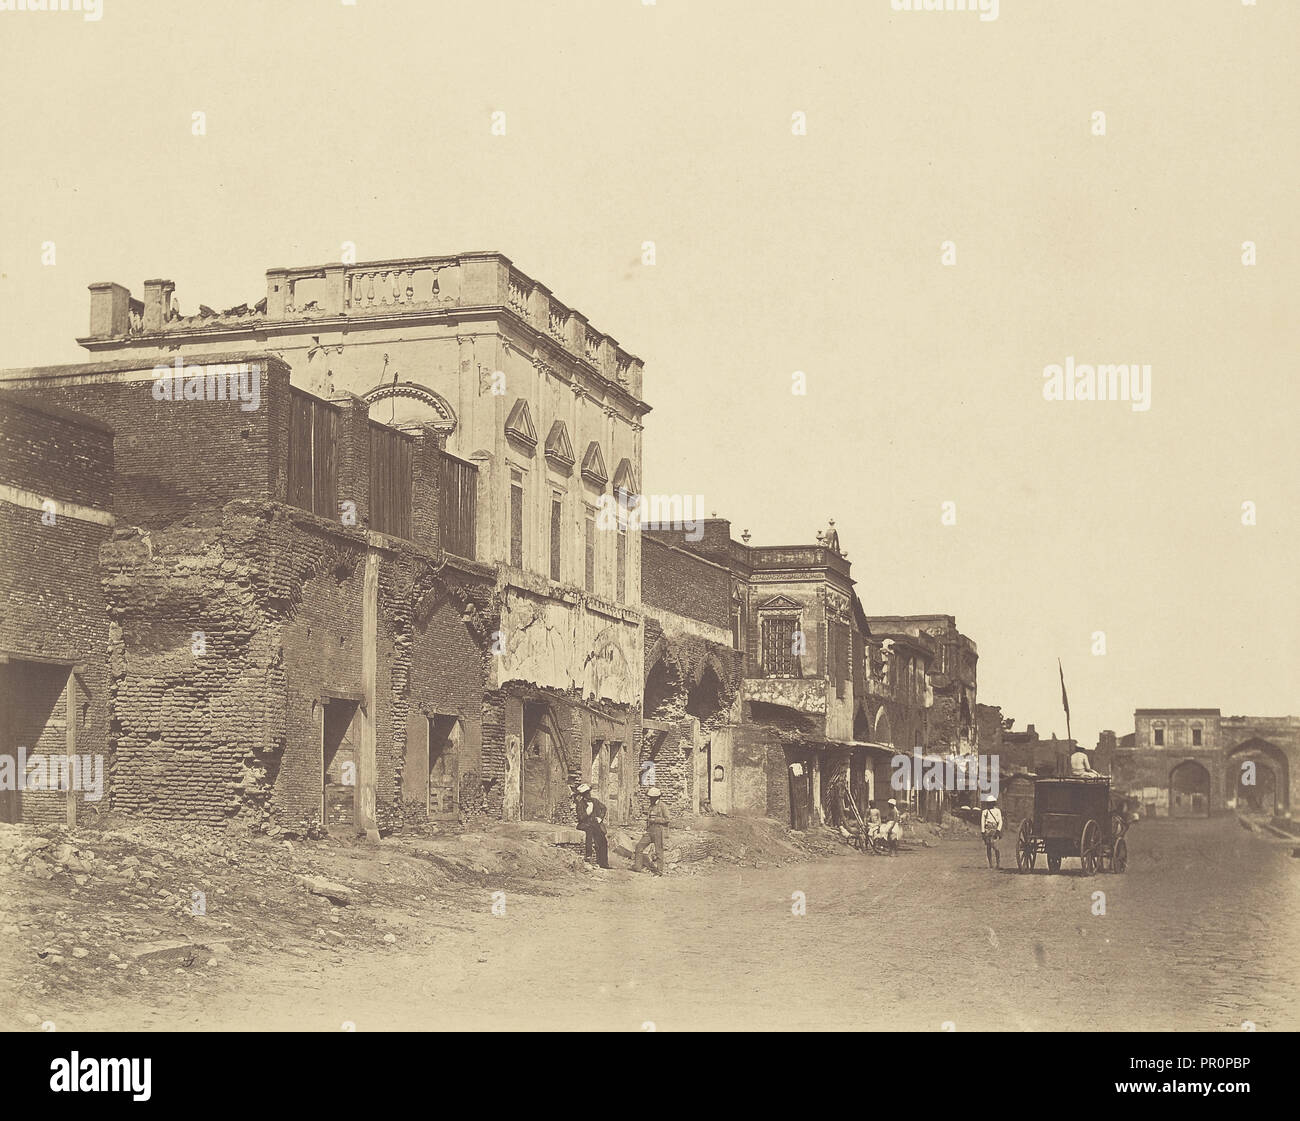 House in Which the King was Confined in the Palace; Felice Beato, 1832 - 1909, Delhi, India; 1858; Albumen - Stock Image